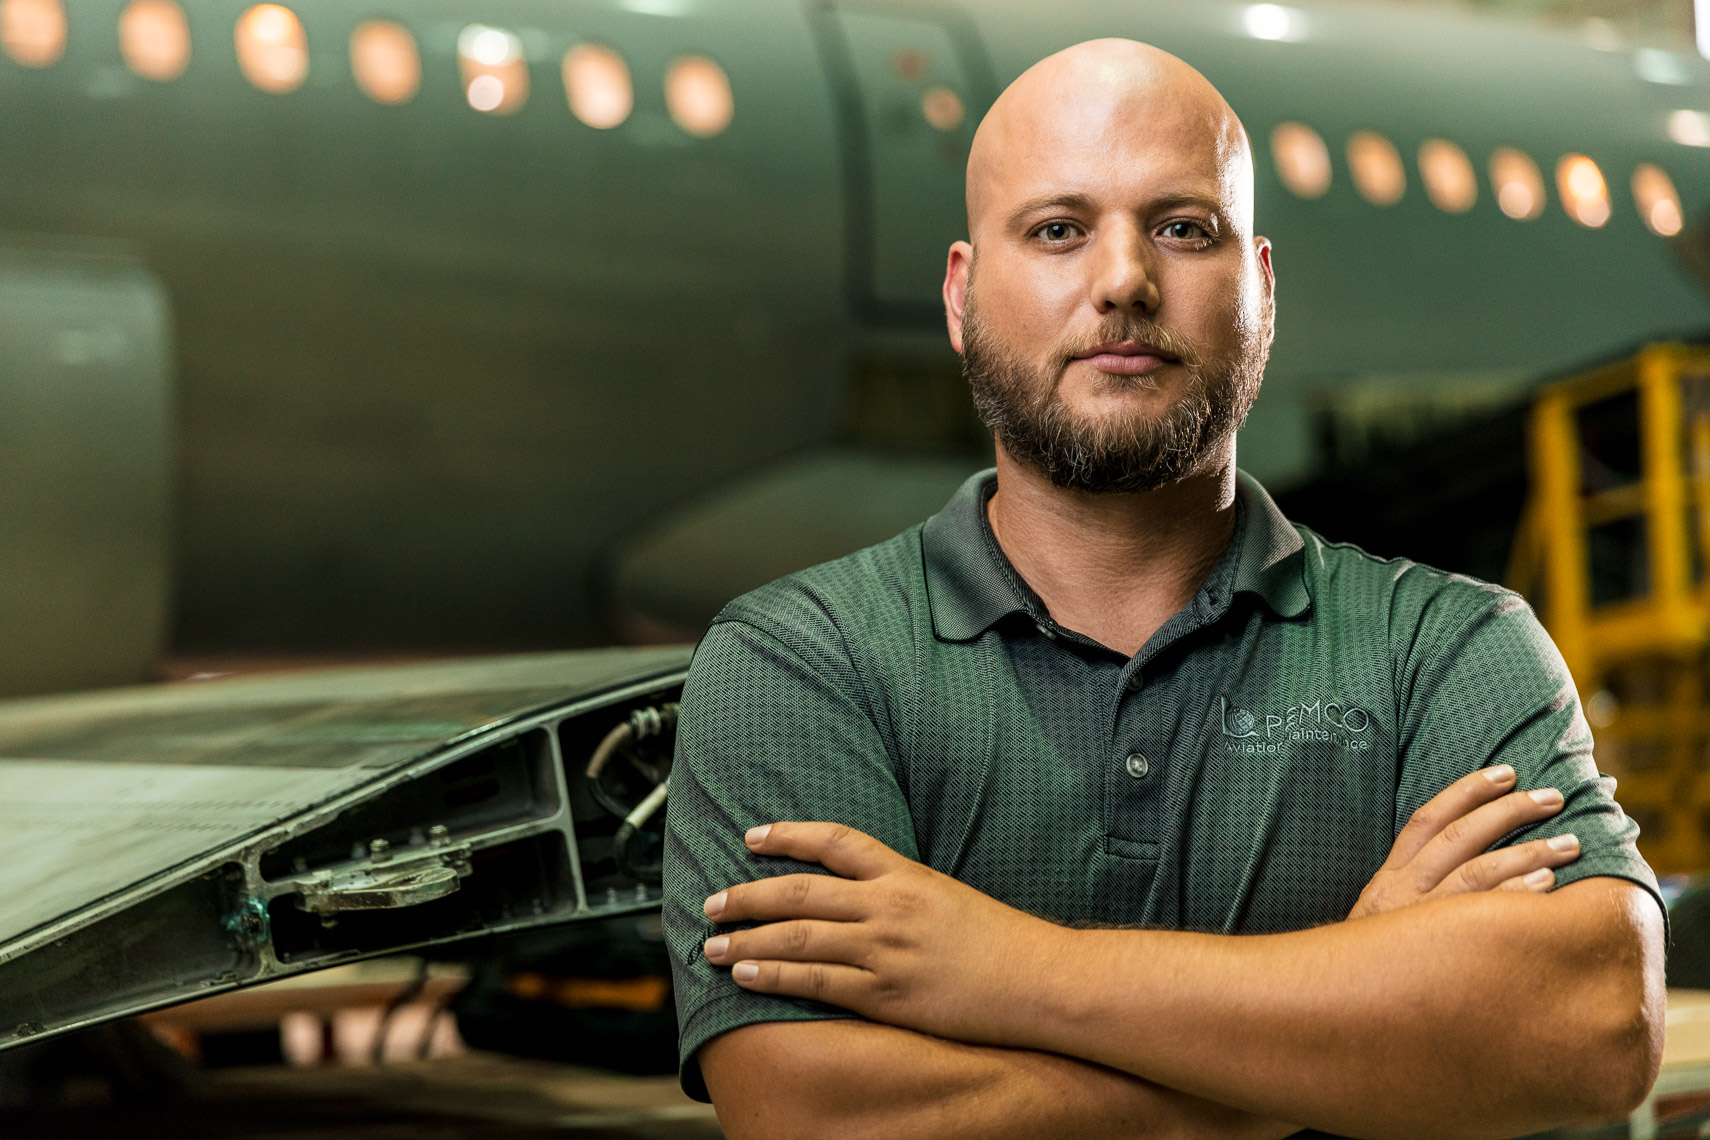 Portrait of a man in front of an airplane